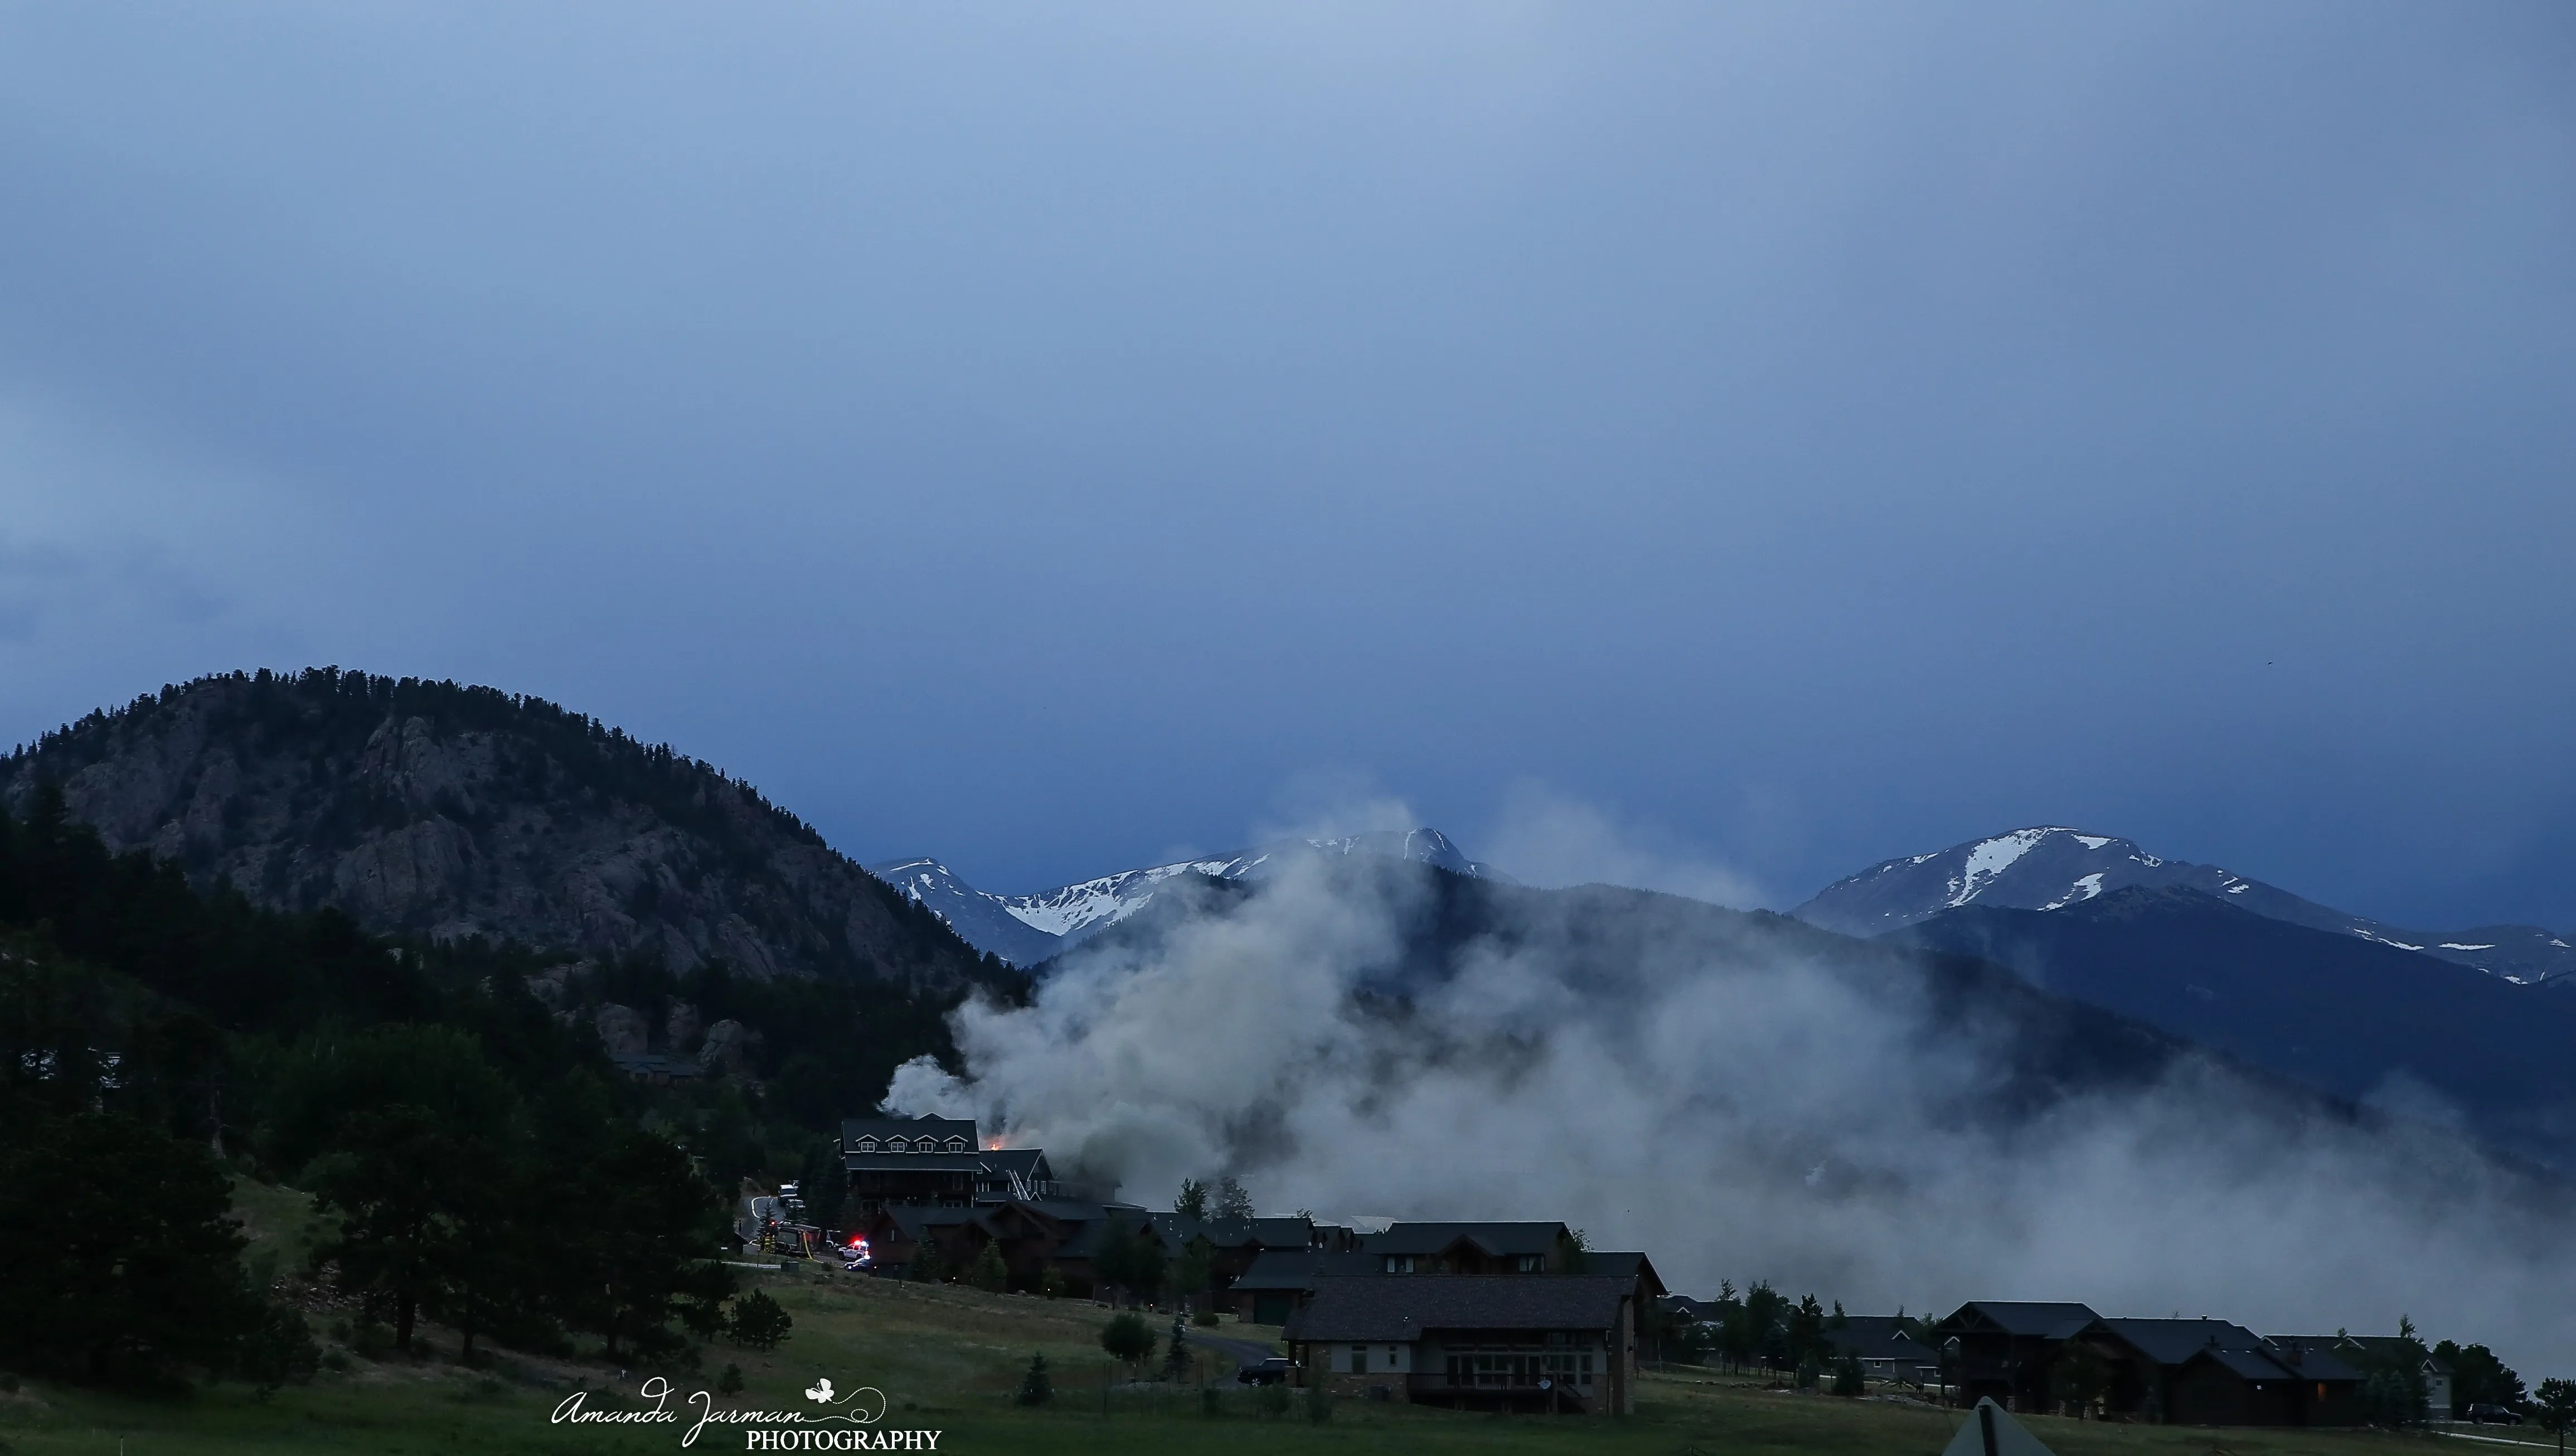 Marys Lake Lodge Fire In Estes Park Interrupts Wedding Of